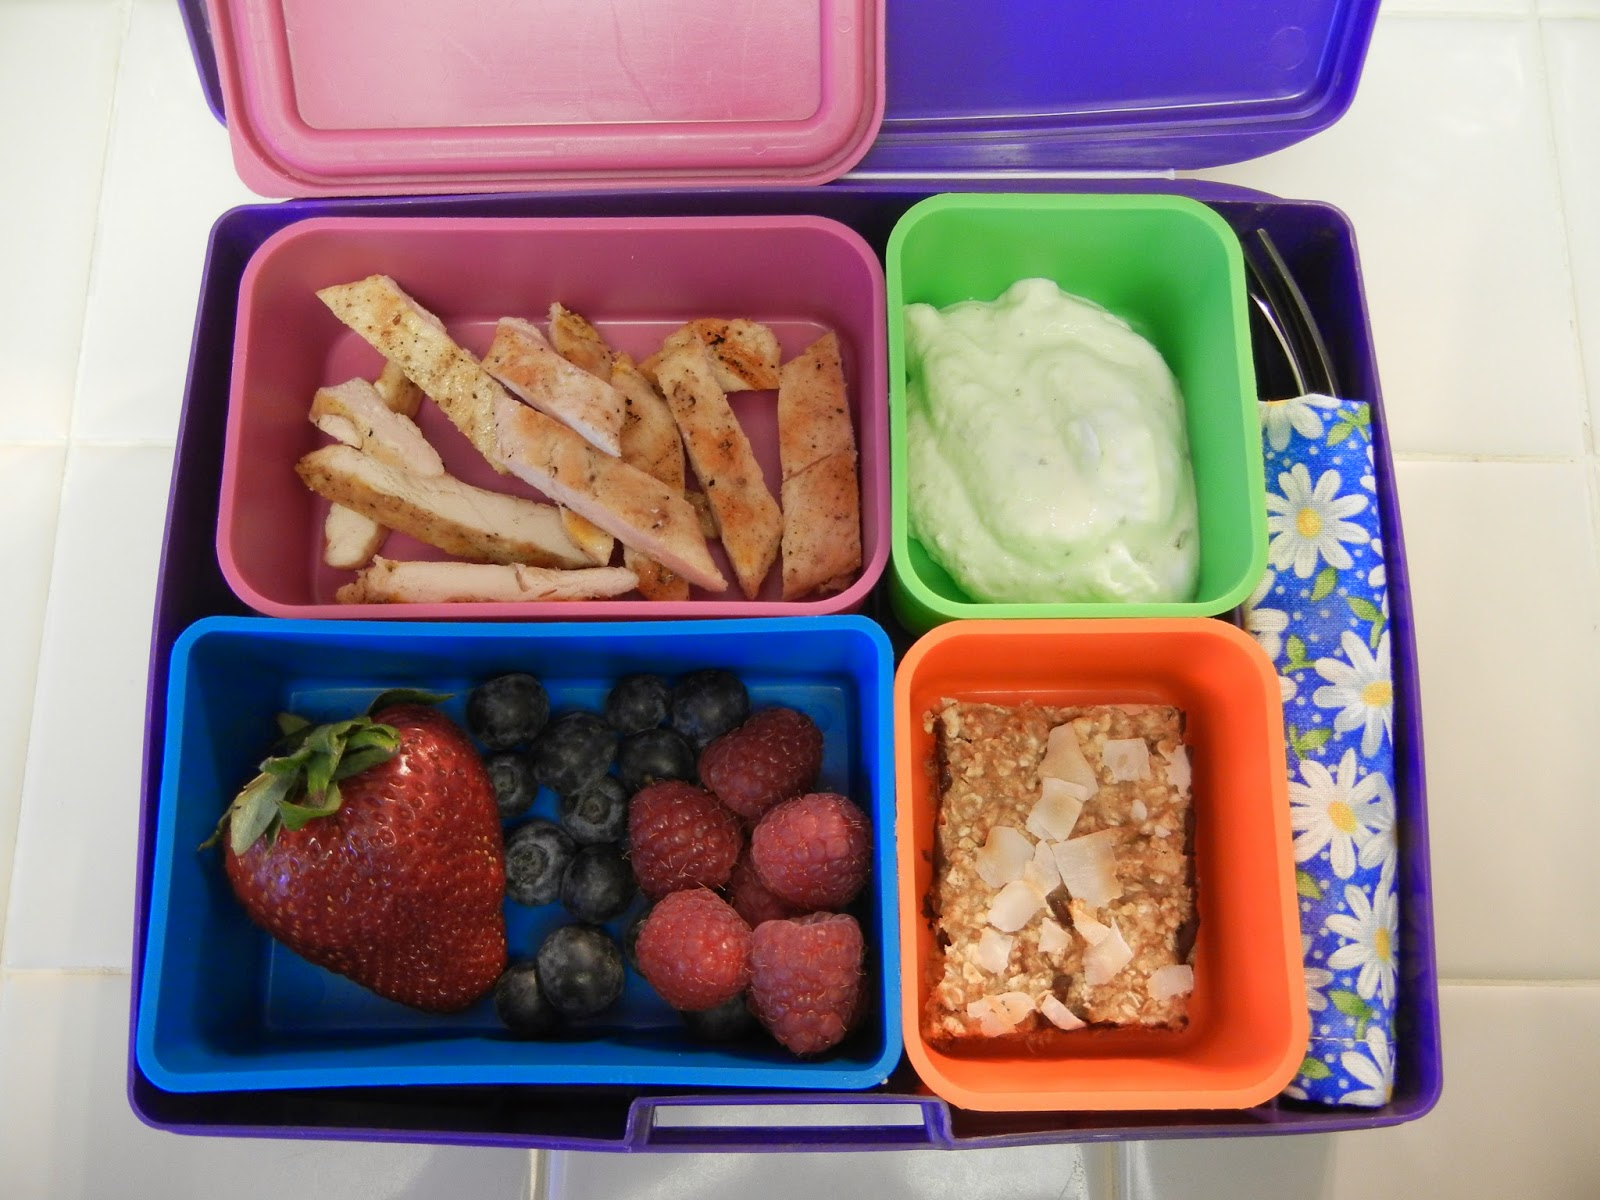 Chicken+Berries+Bento+Lunch+Eggface Weight Loss Recipes July is National Picnic Month! A Bevy of Bento Box Lunches to Celebrate.